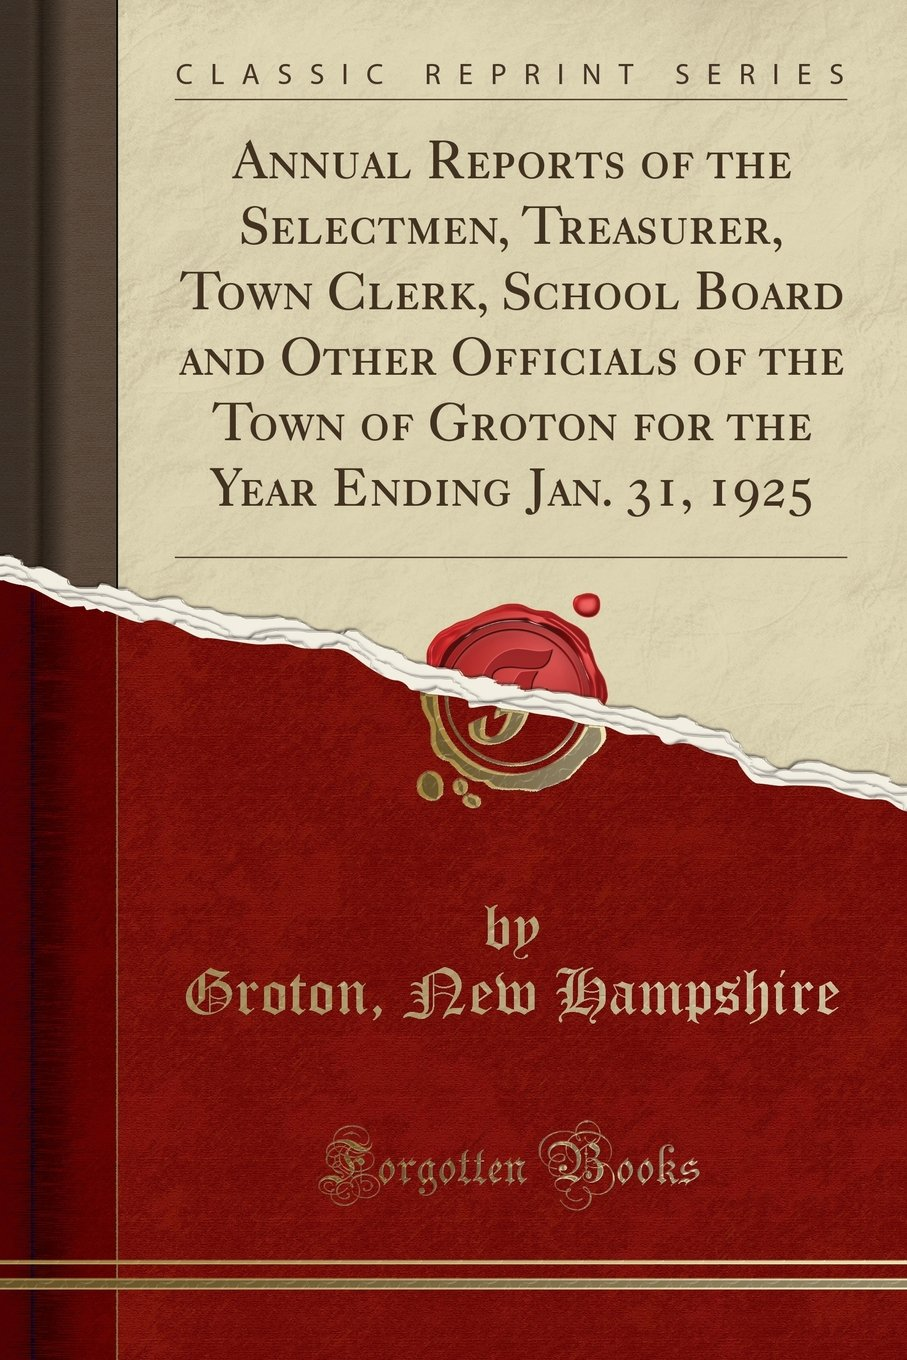 Annual Reports of the Selectmen, Treasurer, Town Clerk, School Board and Other Officials of the Town of Groton for the Year Ending Jan. 31, 1925 (Classic Reprint) pdf epub